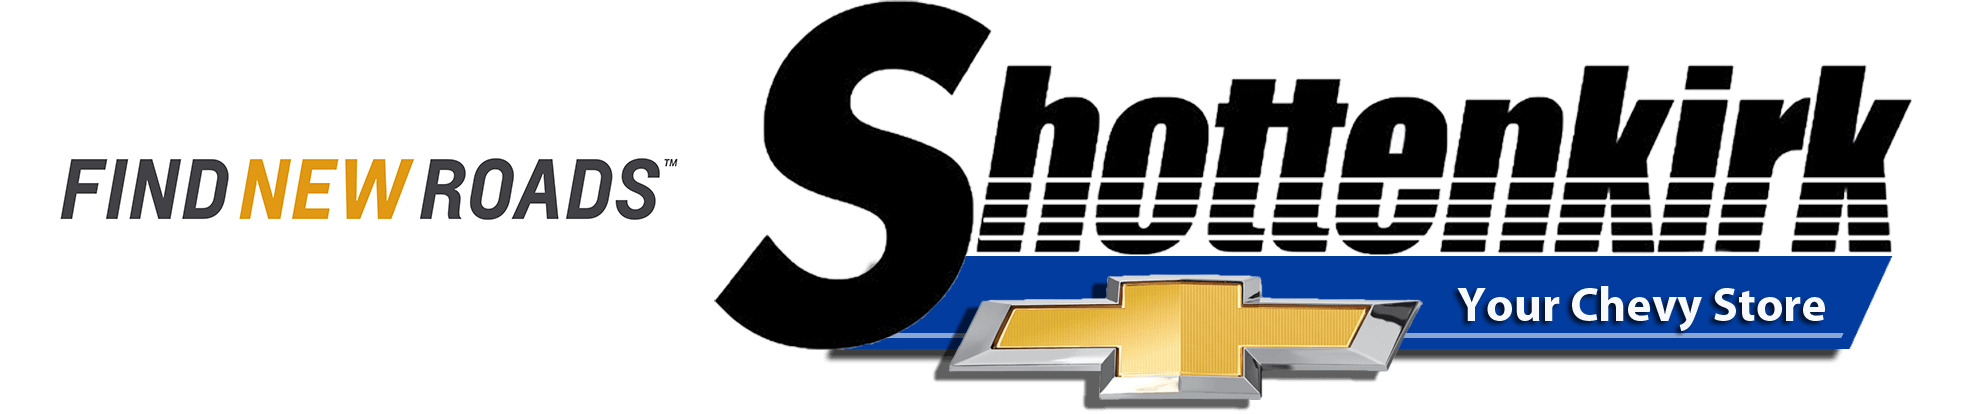 Shottenkirk Chevrolet in Quincy (IL) | New & Used Car Dealer